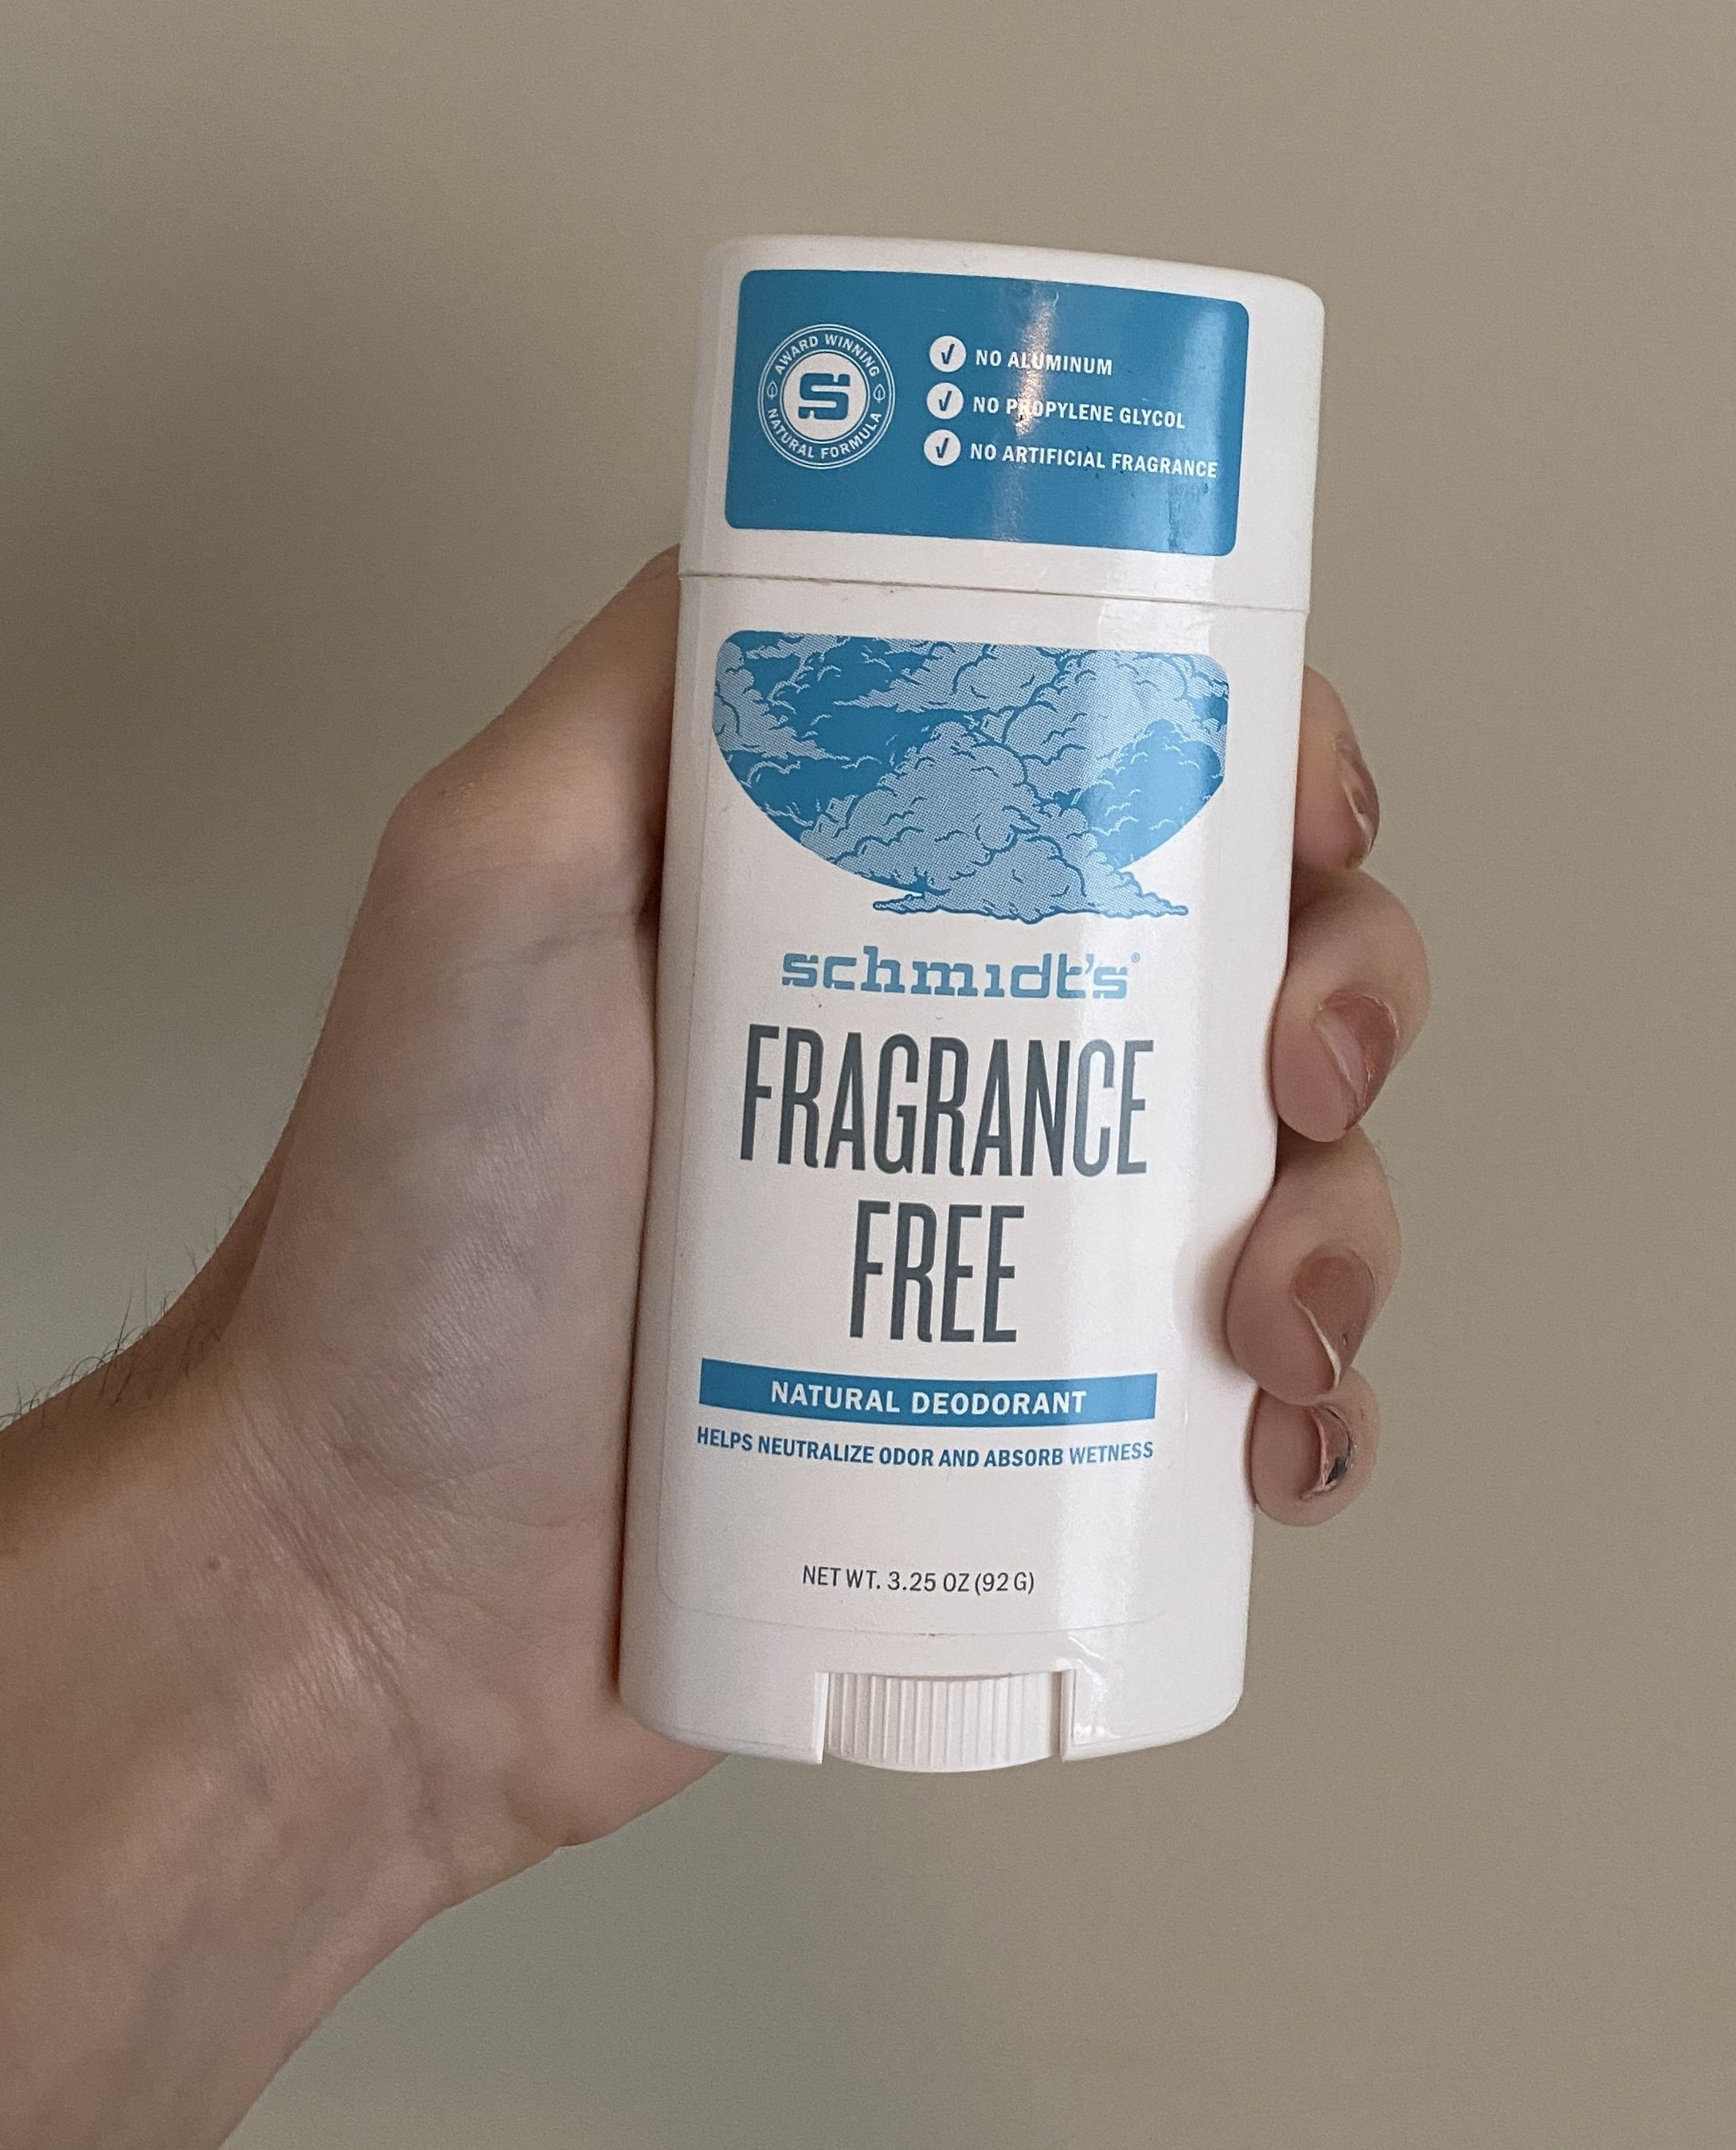 the writer's hand holding the unscented deodorant